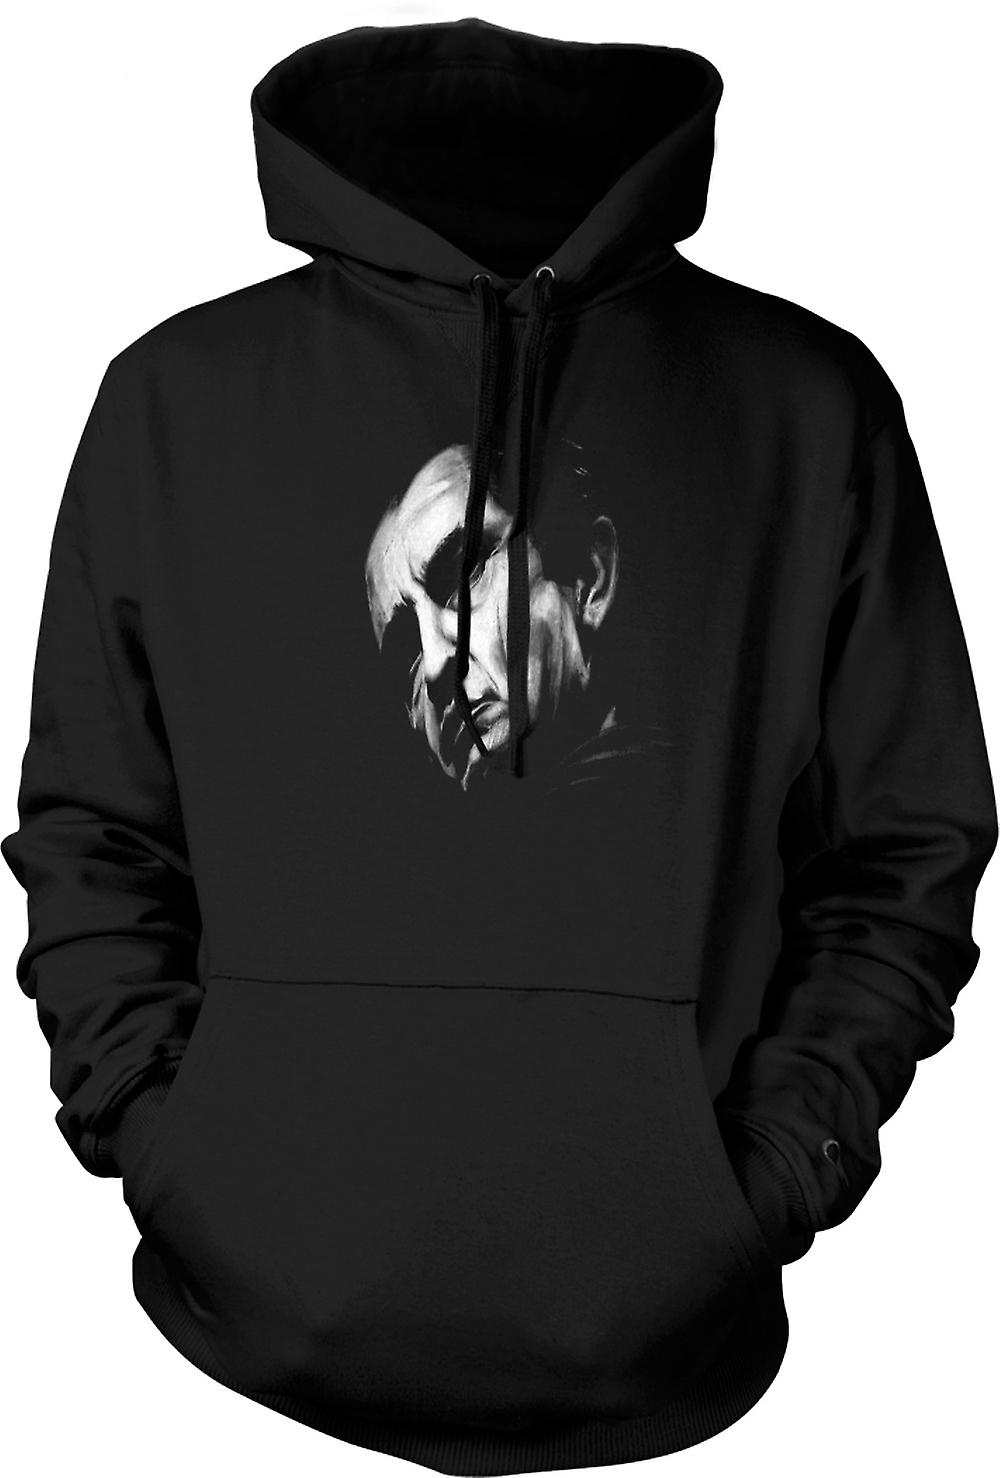 Mens Hoodie - Johnny Cash - Sketch - Portrait